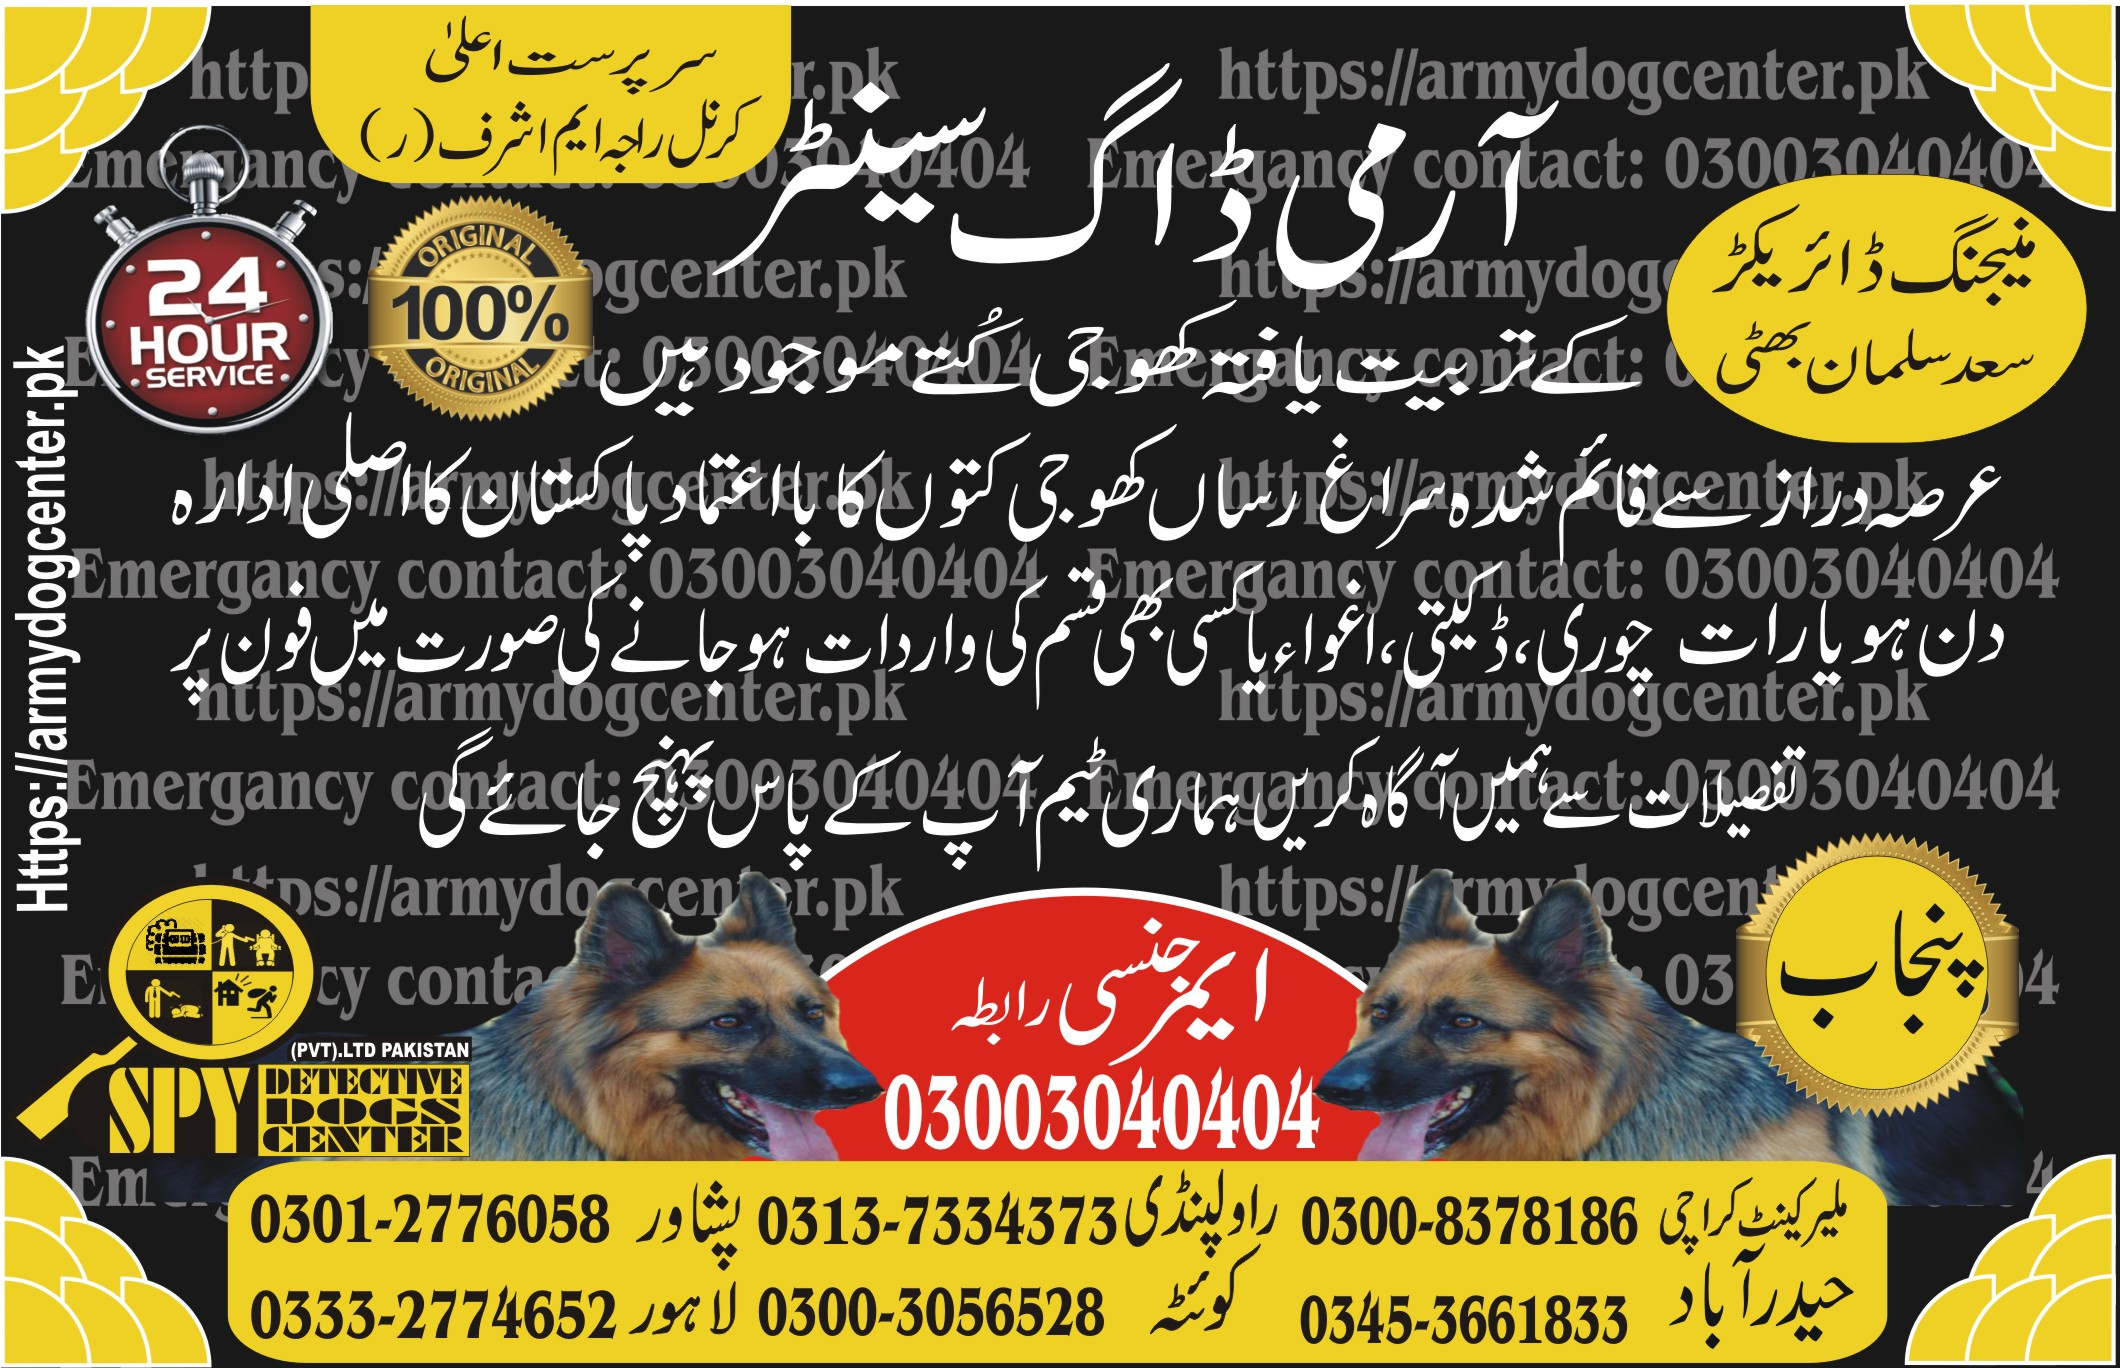 Army Dog Center Punjab